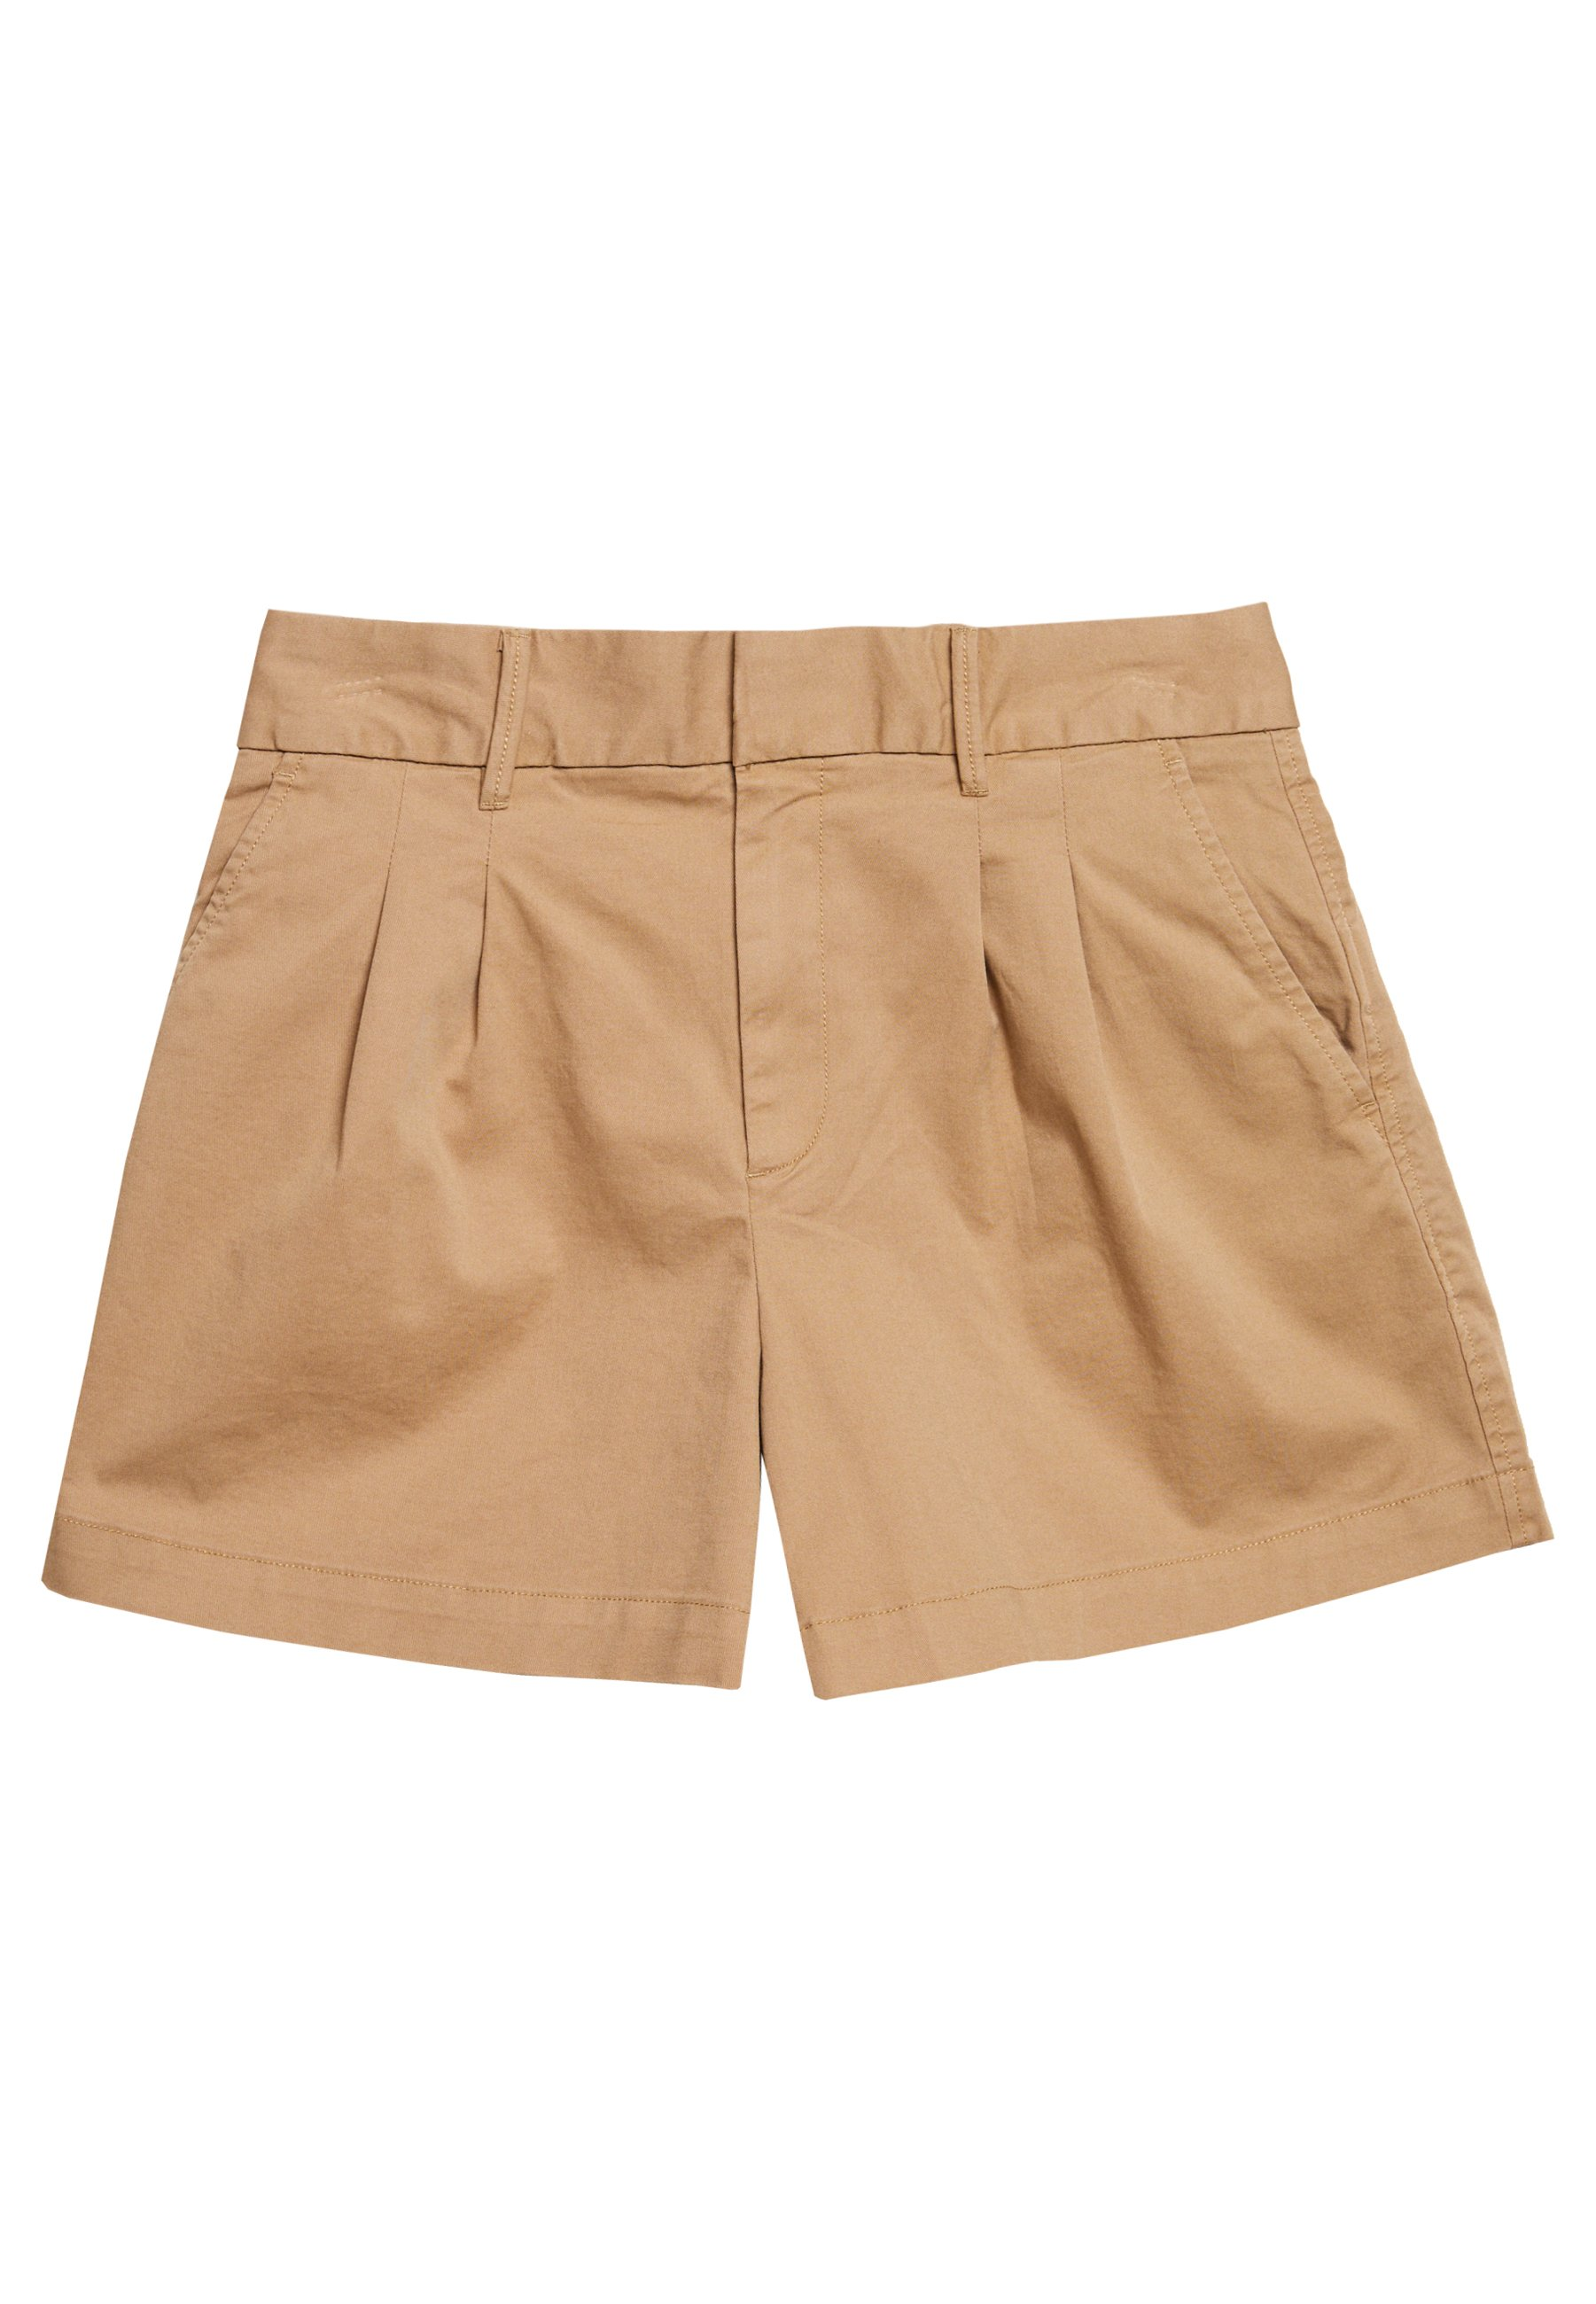 GAP PLEATED - Shorts - mojave